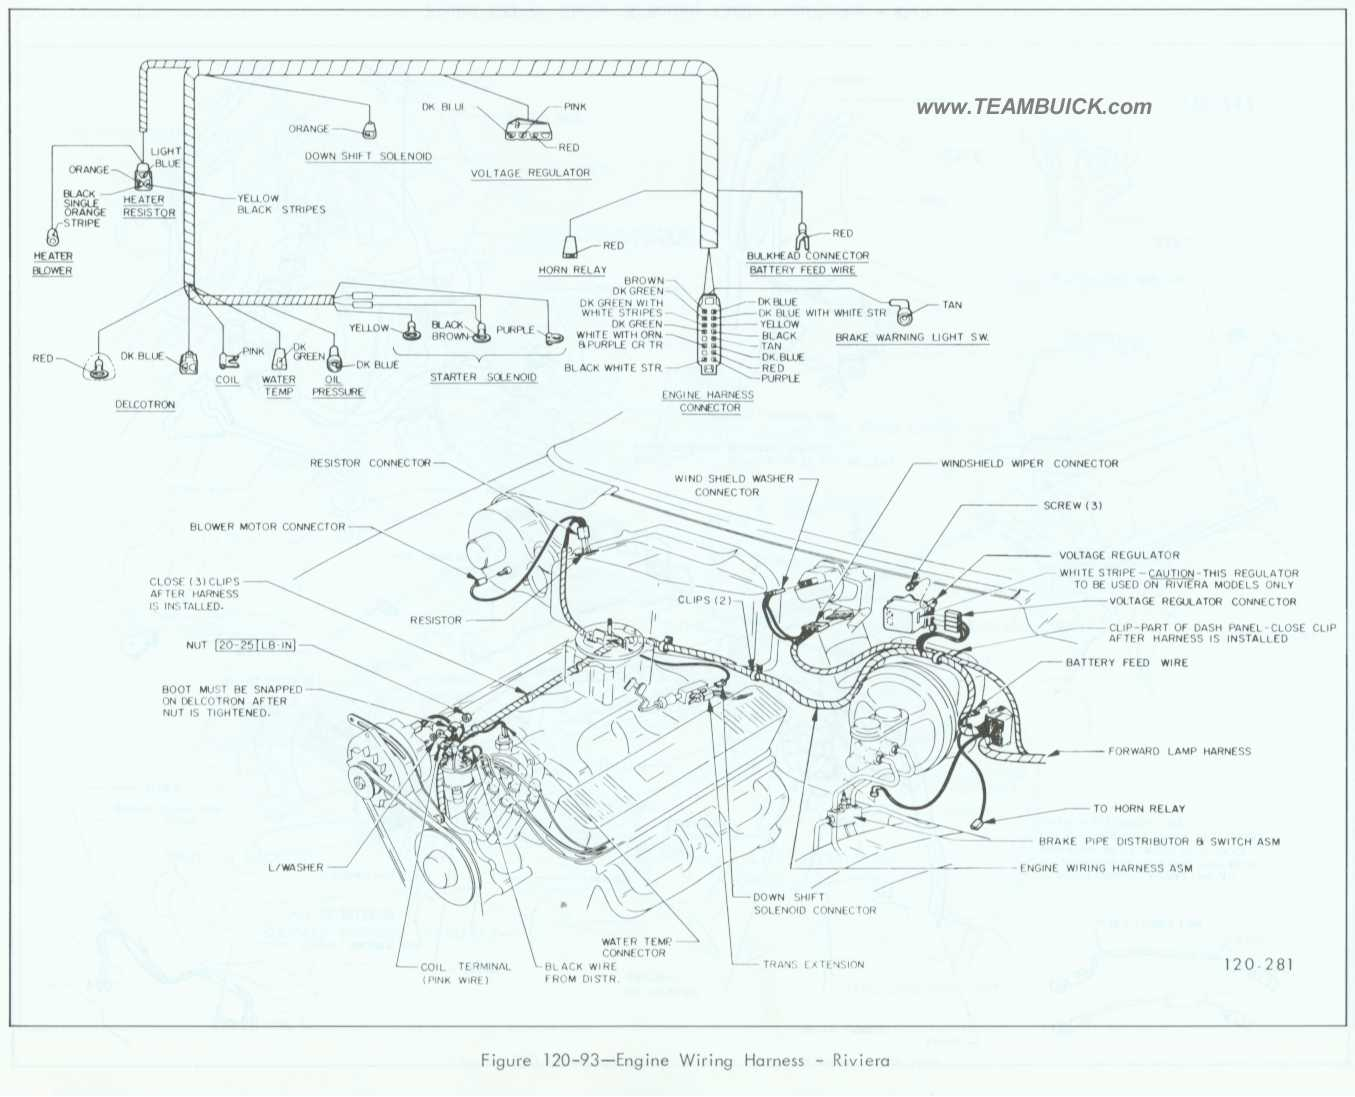 1964 buick skylark fuse box diagram wiring schematic